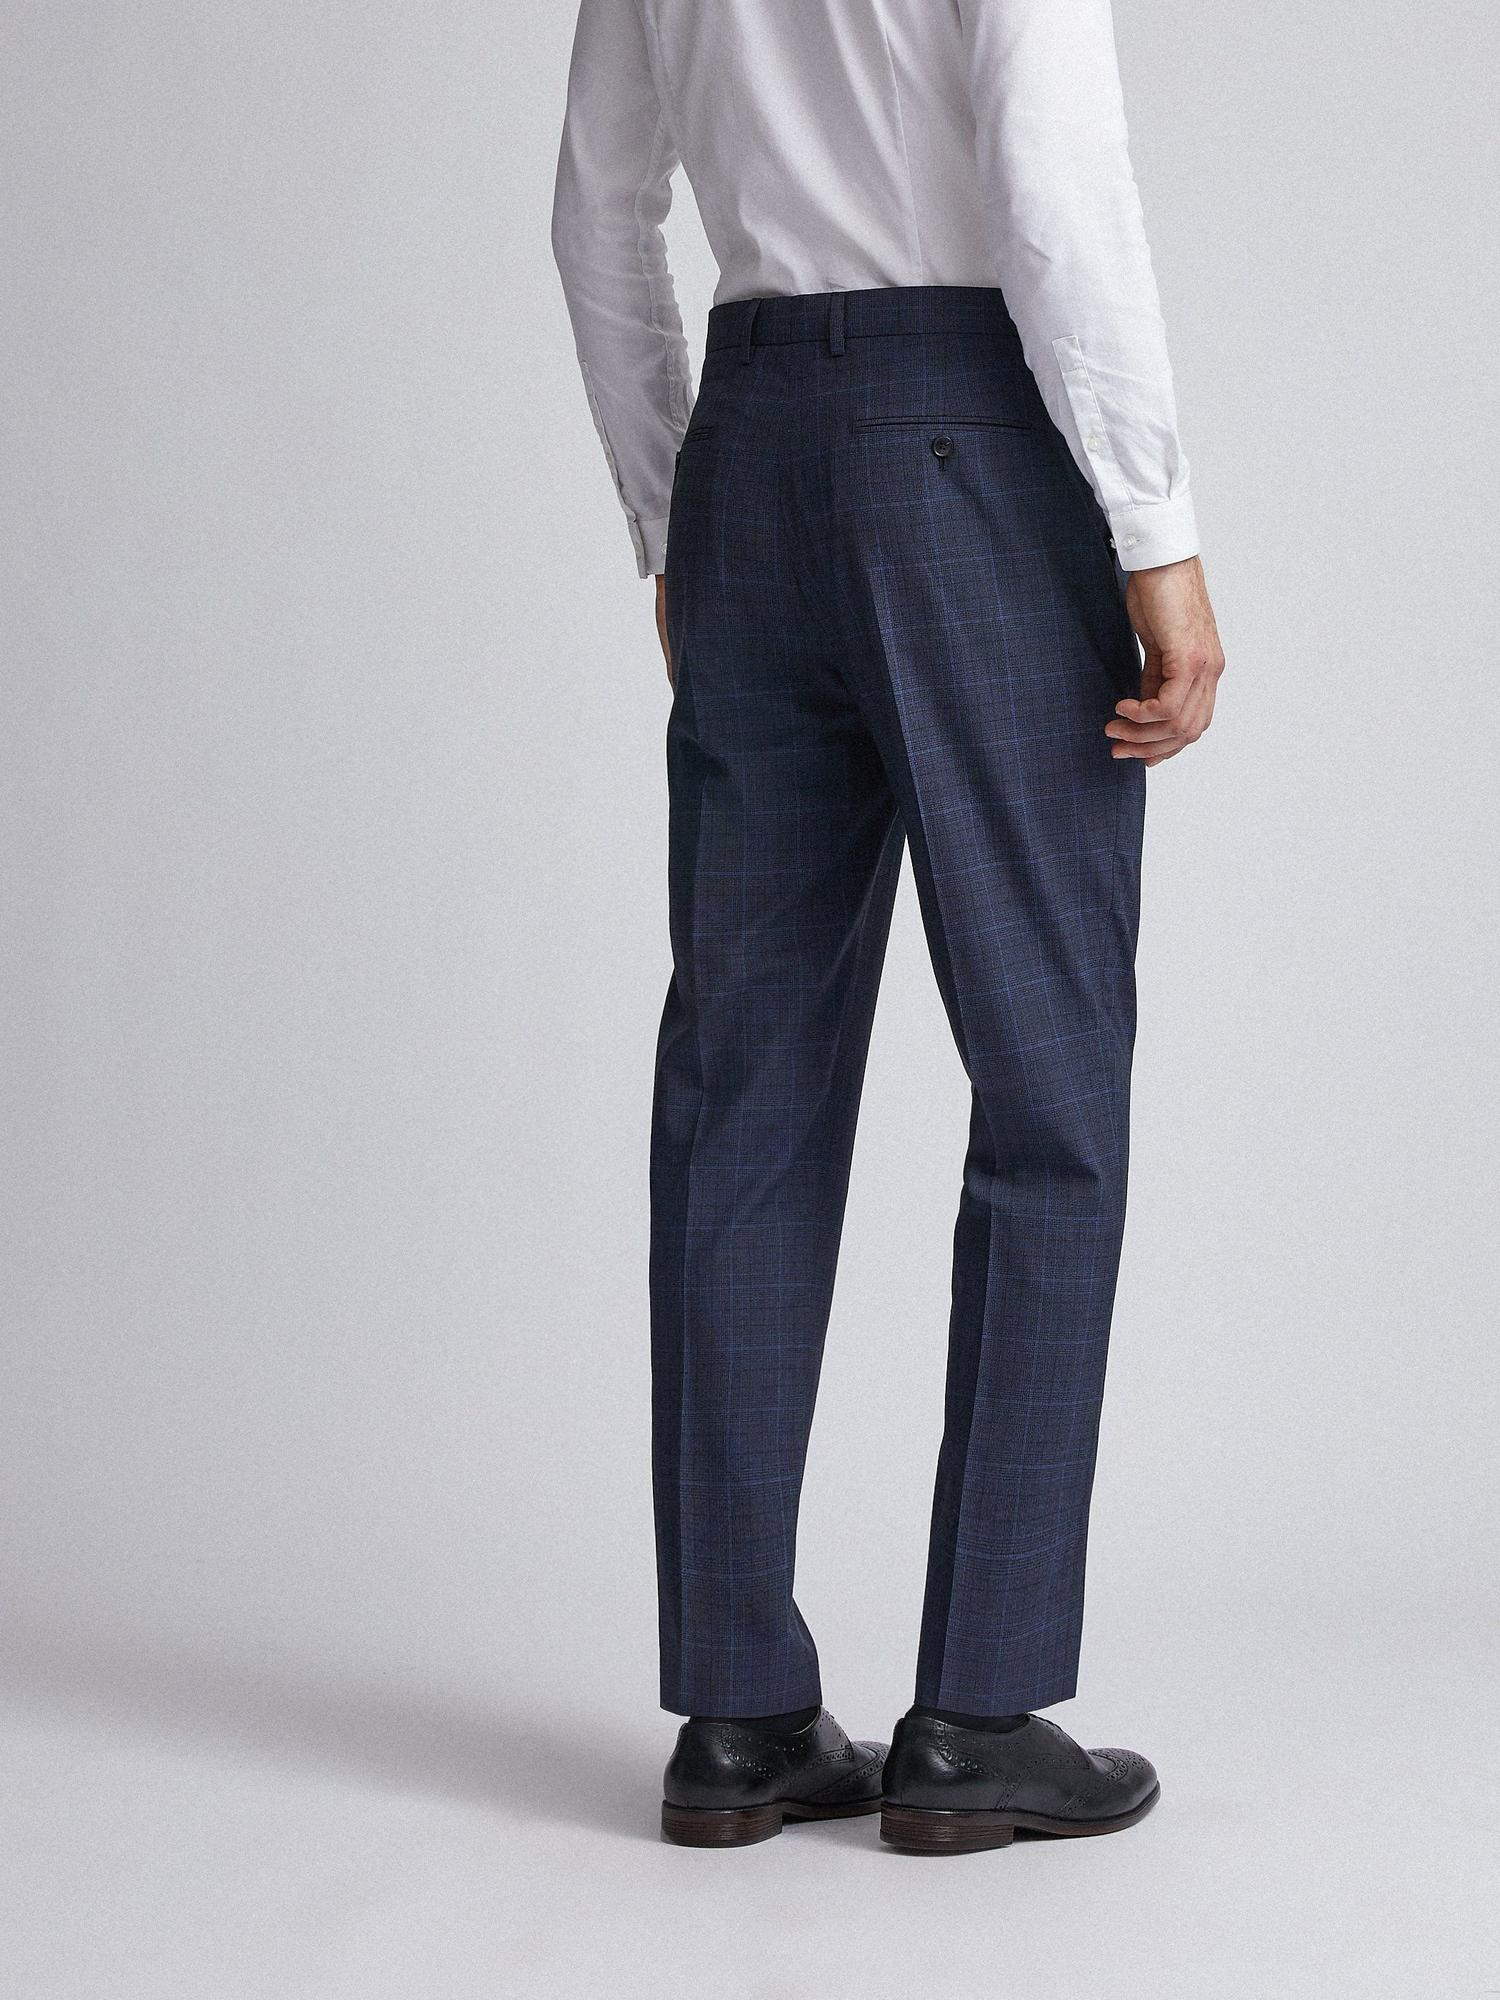 148 Navy Tonal Check Tailored Fit Suit Trousers image number 3